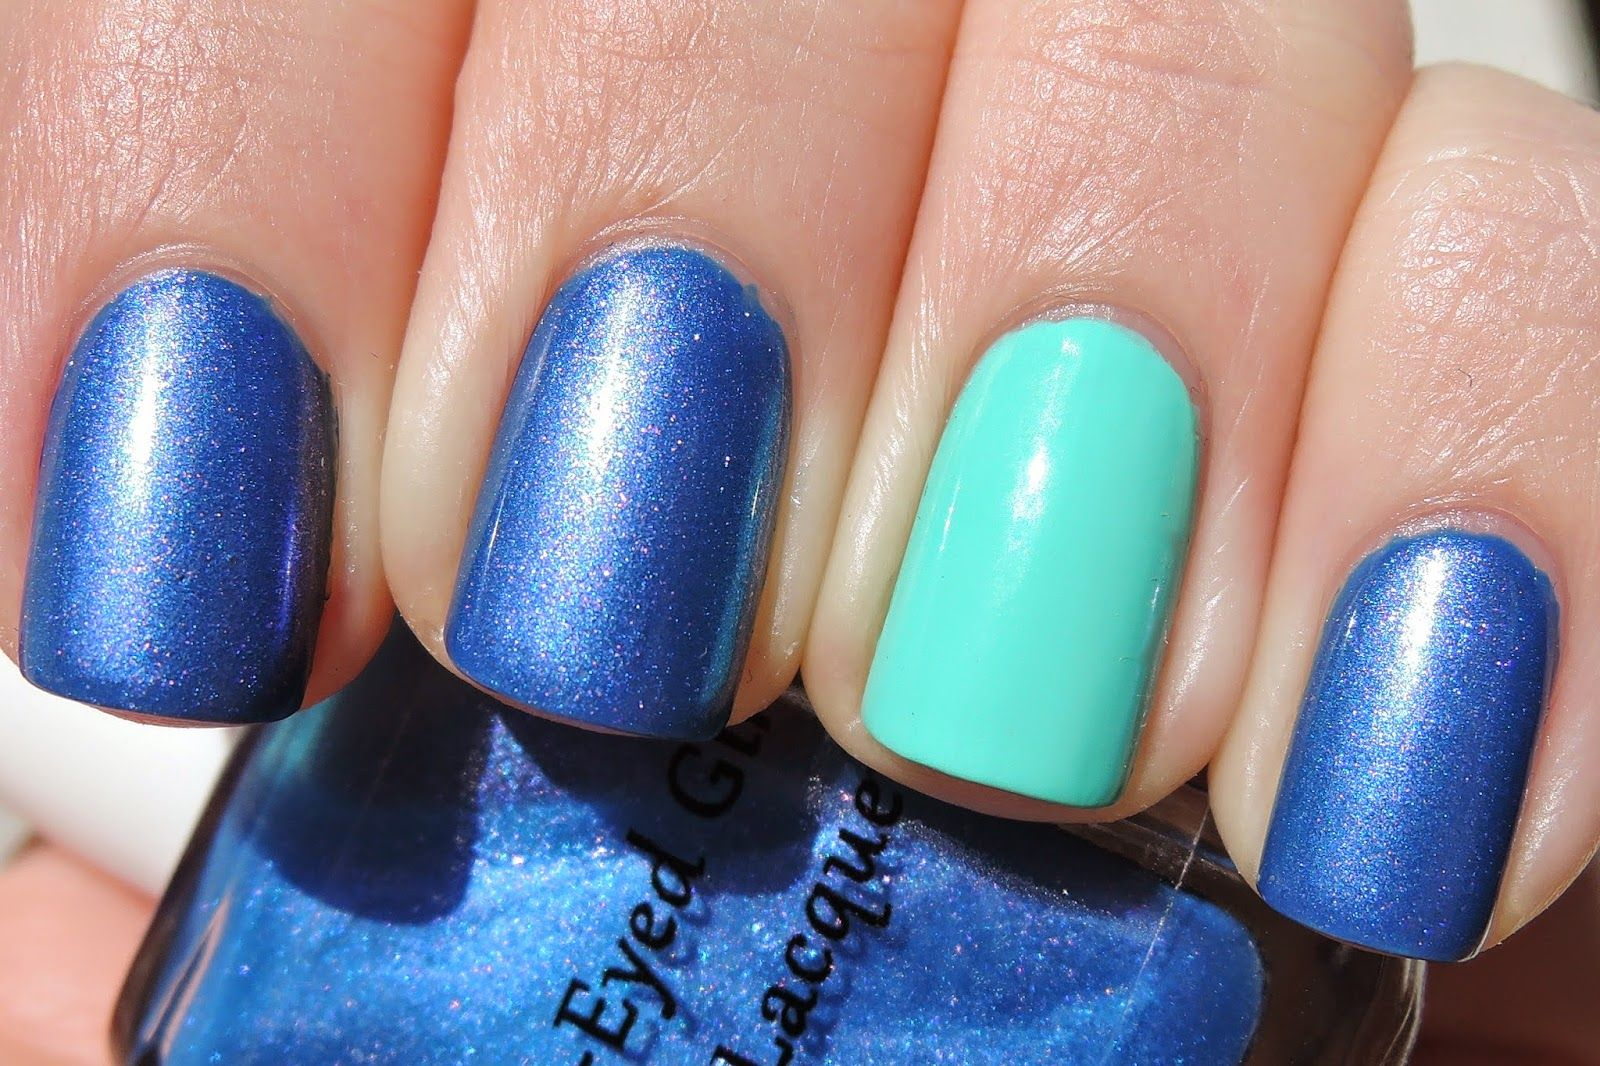 My Life in Polish BlueEyed Girl Lacquer Birthday nails